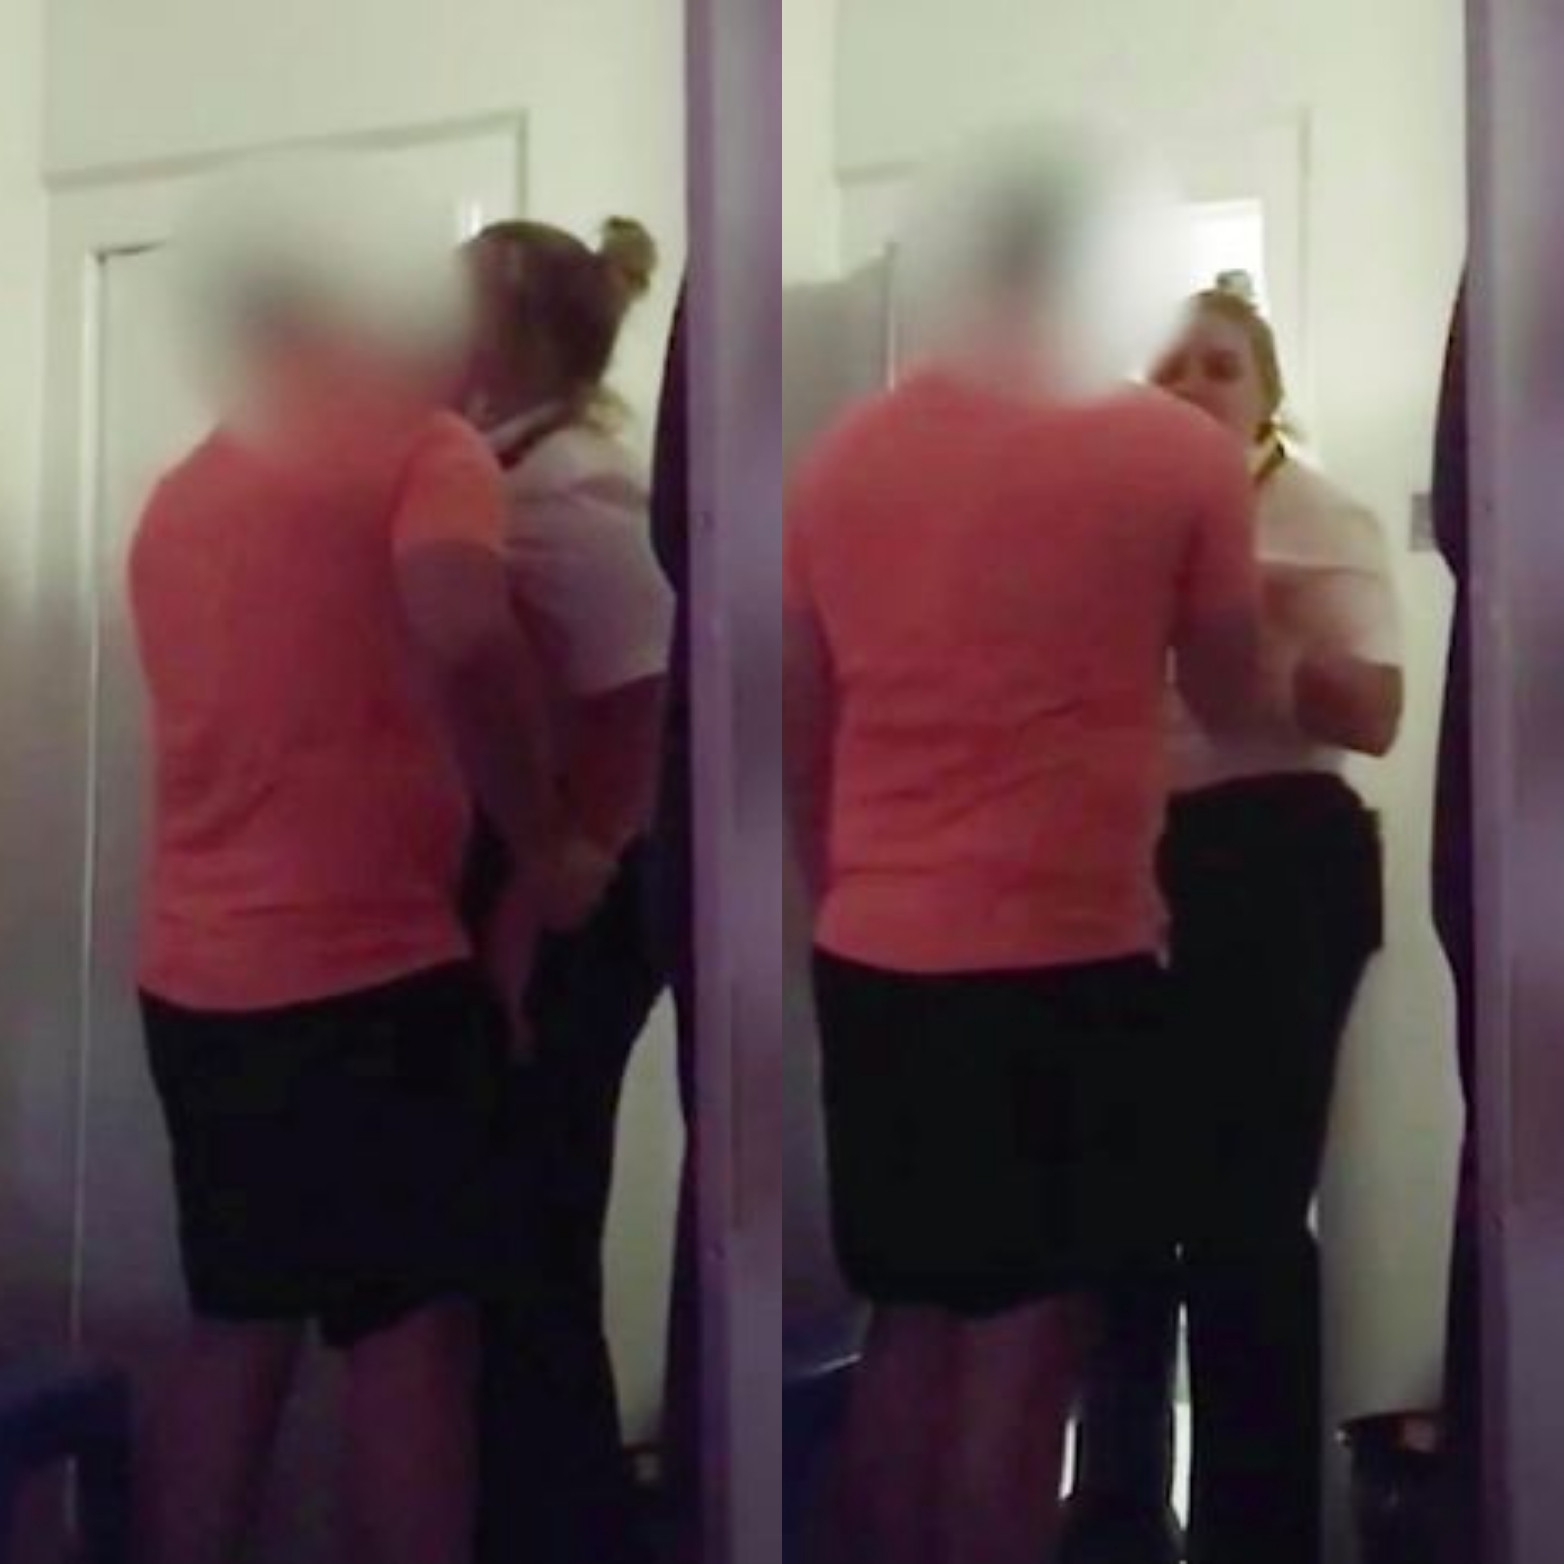 Female prison warder filmed kissing an inmate in his cell (video)